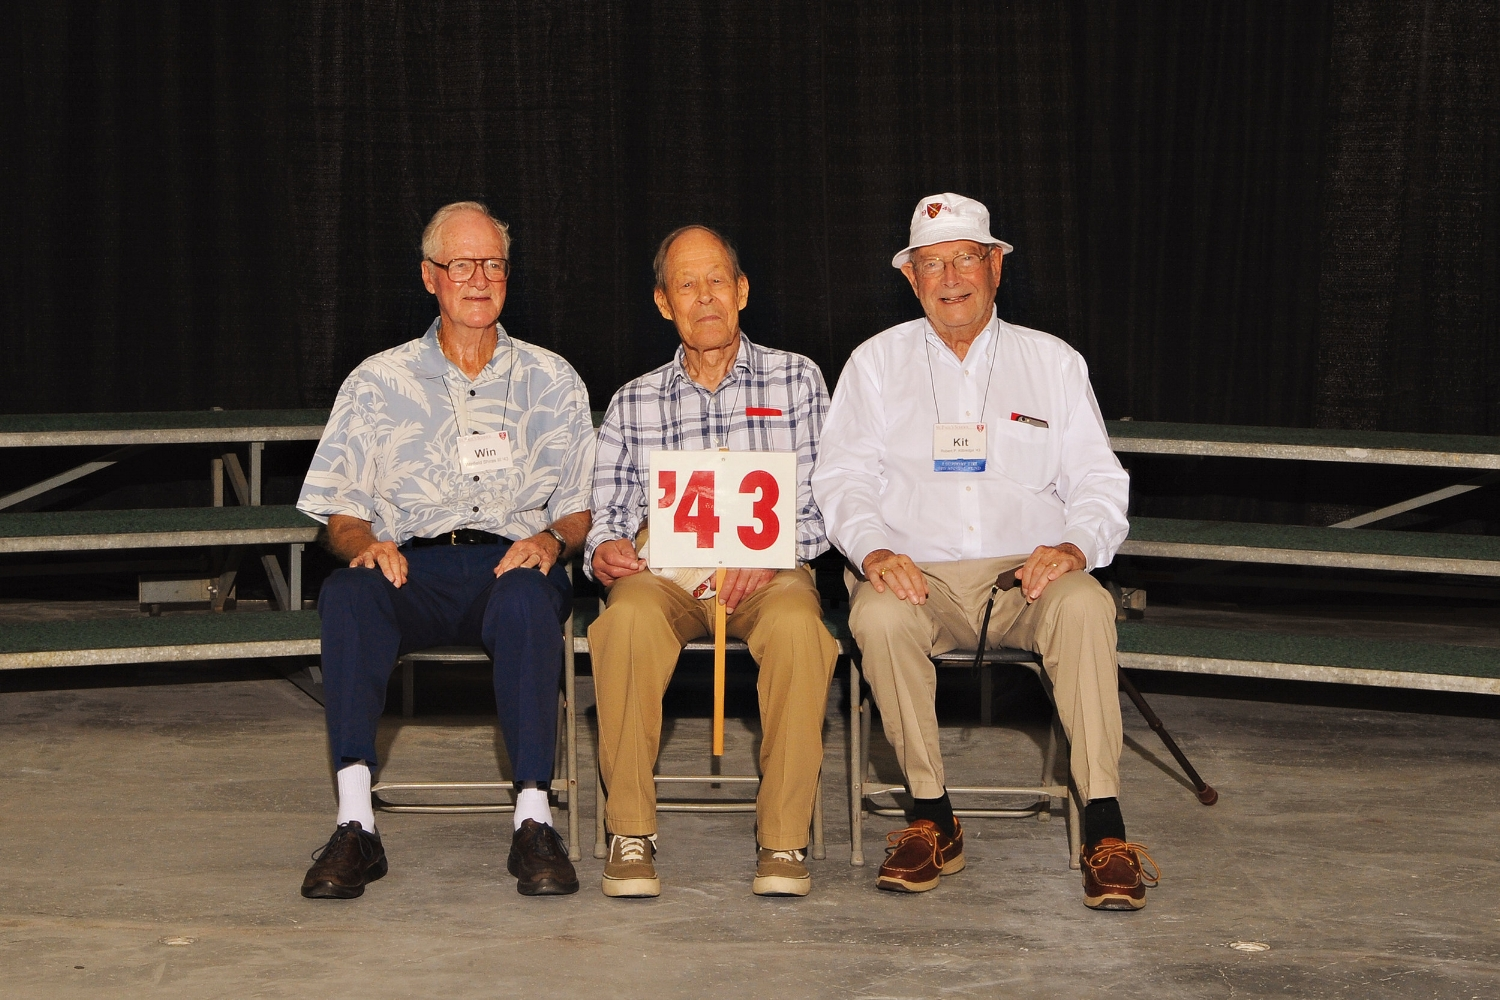 (L. to r.): Win Shiras, Norm Walker, and Kit Kittredge.